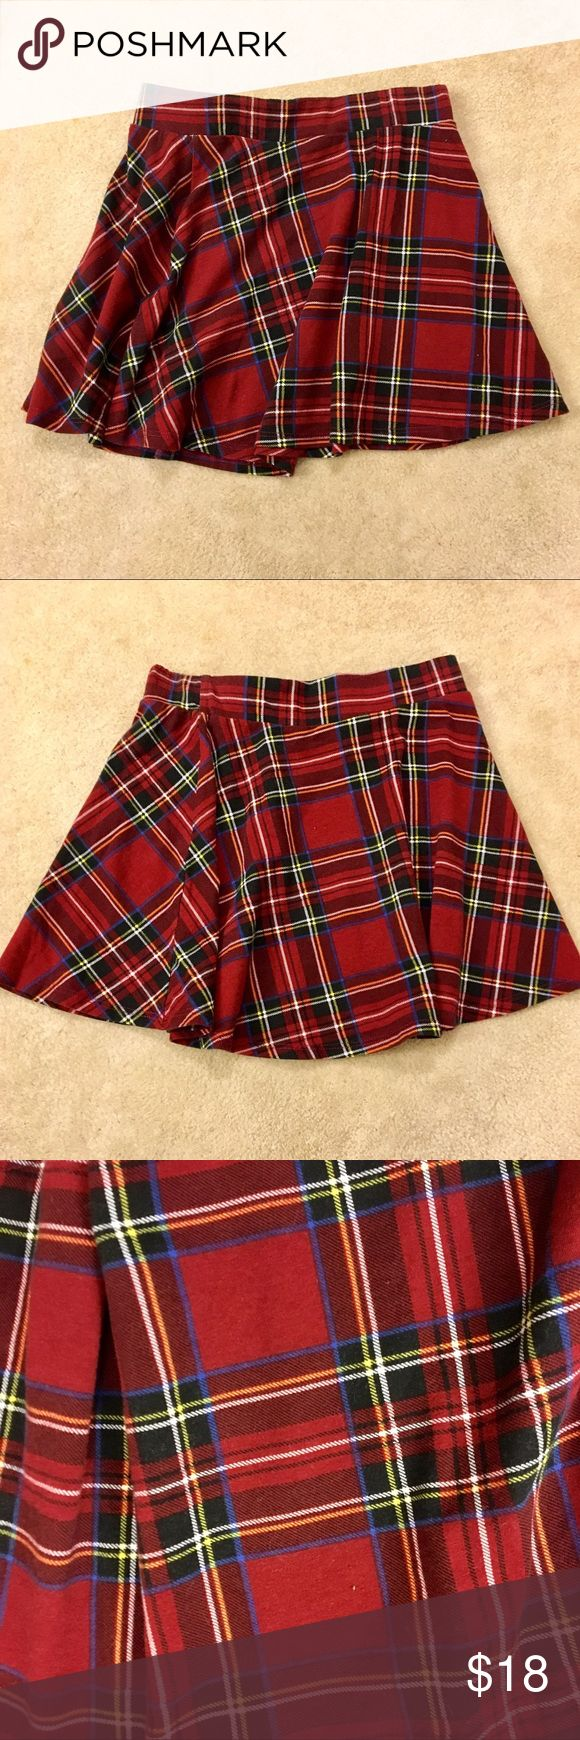 "Red Plaid Skirt - ""Schoolgirl Skirt"" Adorable red plaid skirt. Honestly, I bought this to try to look like Rachel Green but it's too small on me. The material is cotton so it is comfortable and flowy. It sits at the waist with an elastic band that stretches to fit your waist. The bottom hits mid-thigh so you can show off your legs without feeling too exposed. The measurements are as follows: Waist: 26 in Length: 15 in Bottom circumference: 30 in Skirts Mini"